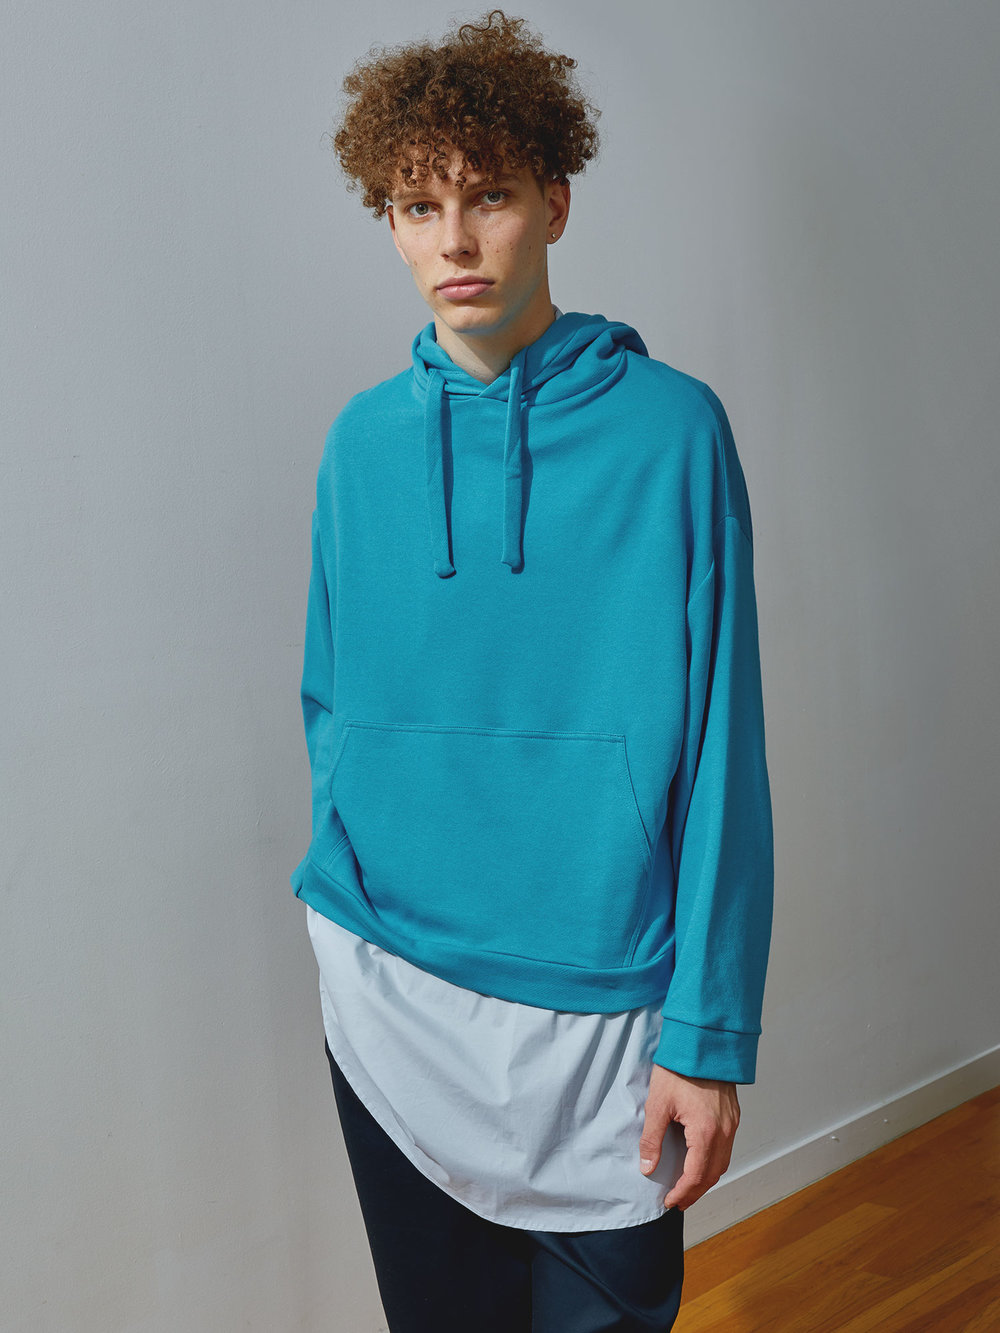 Jean Wears Turquoise Gender-neutral Hoodie by One DNA